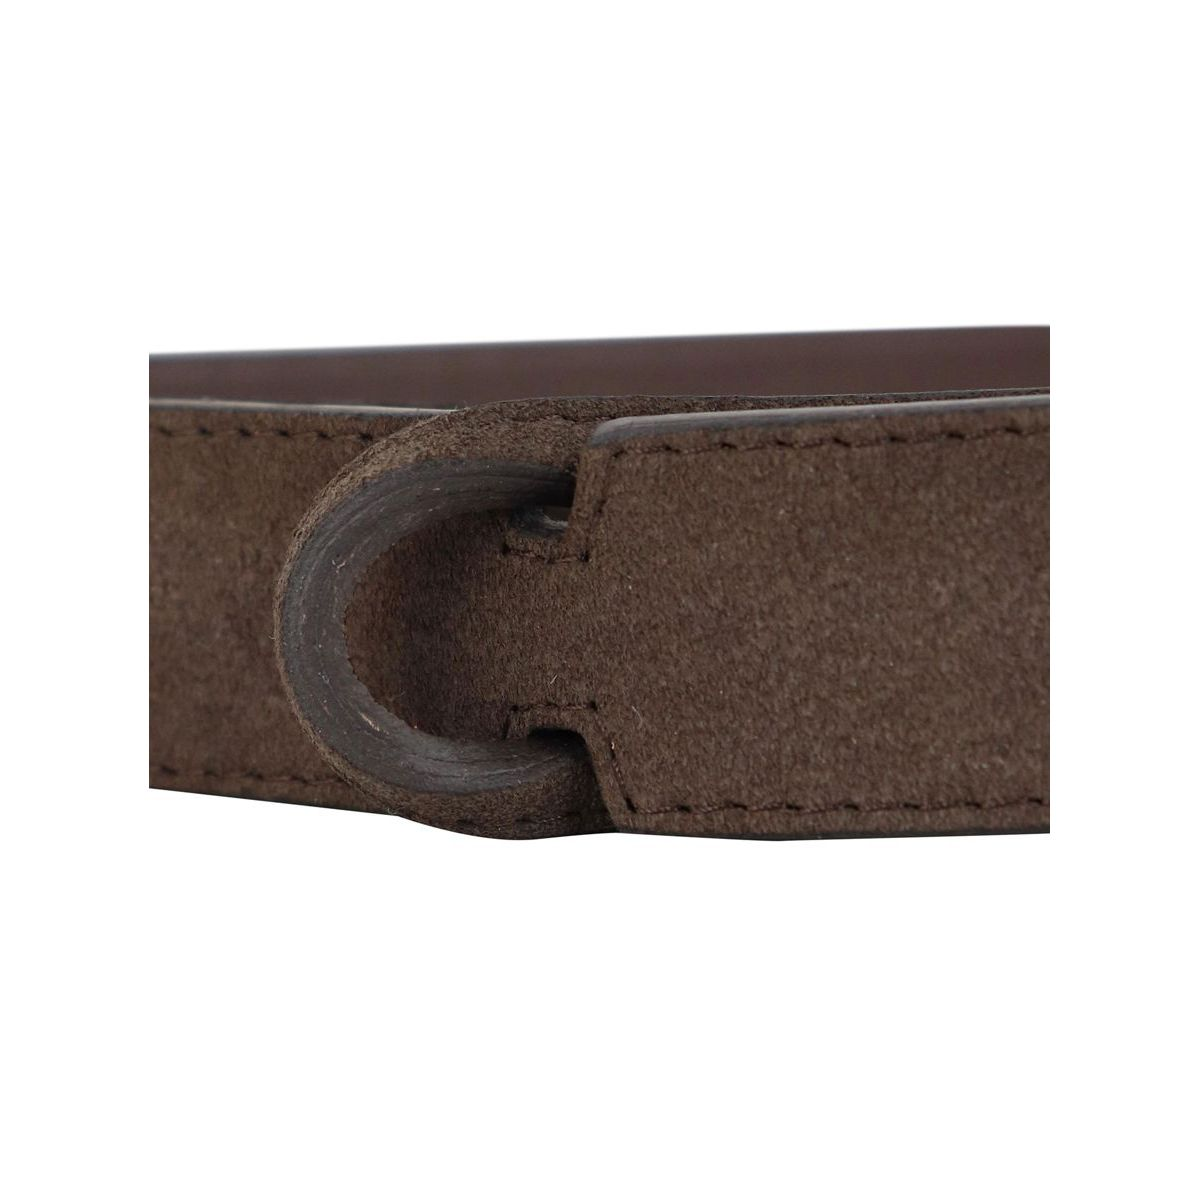 Cintura NO BUCKLE in suede Moro Orciani